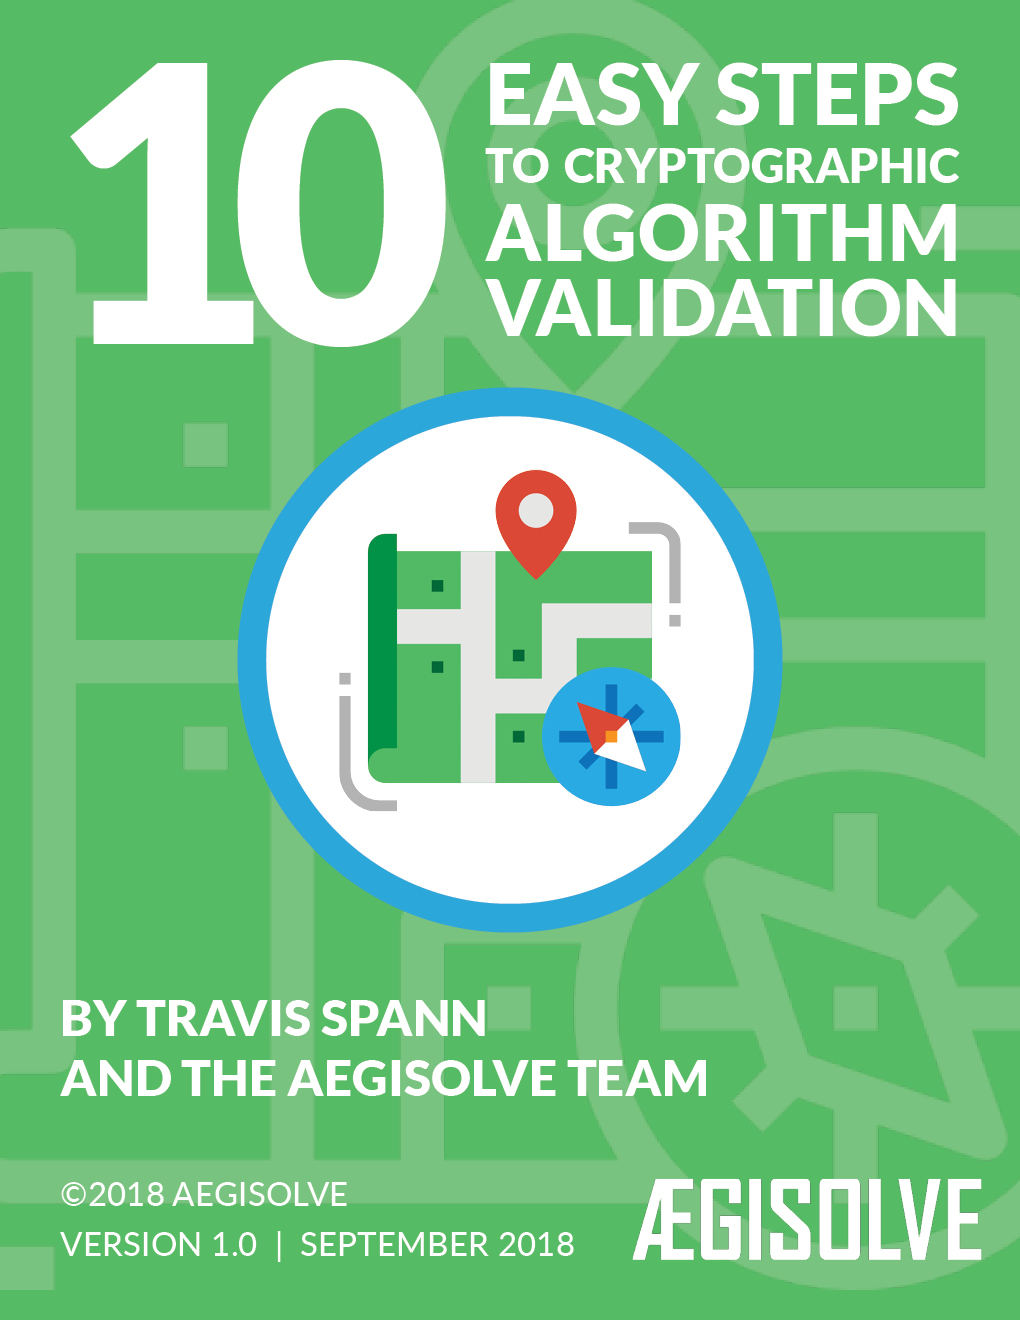 cryptographic algorithm validation guide